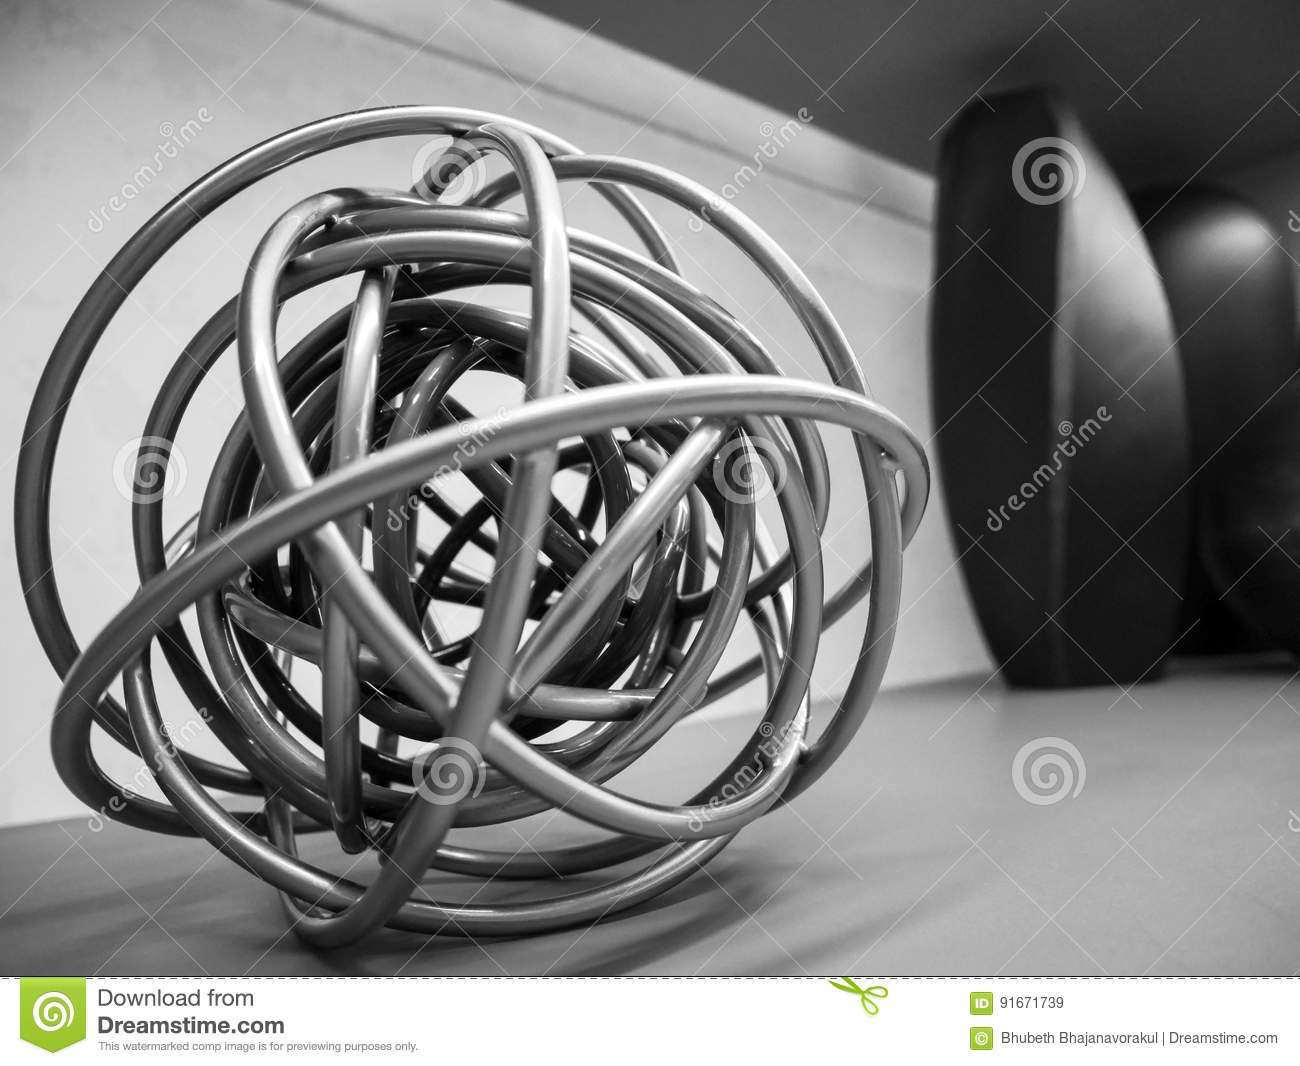 Coil complexity